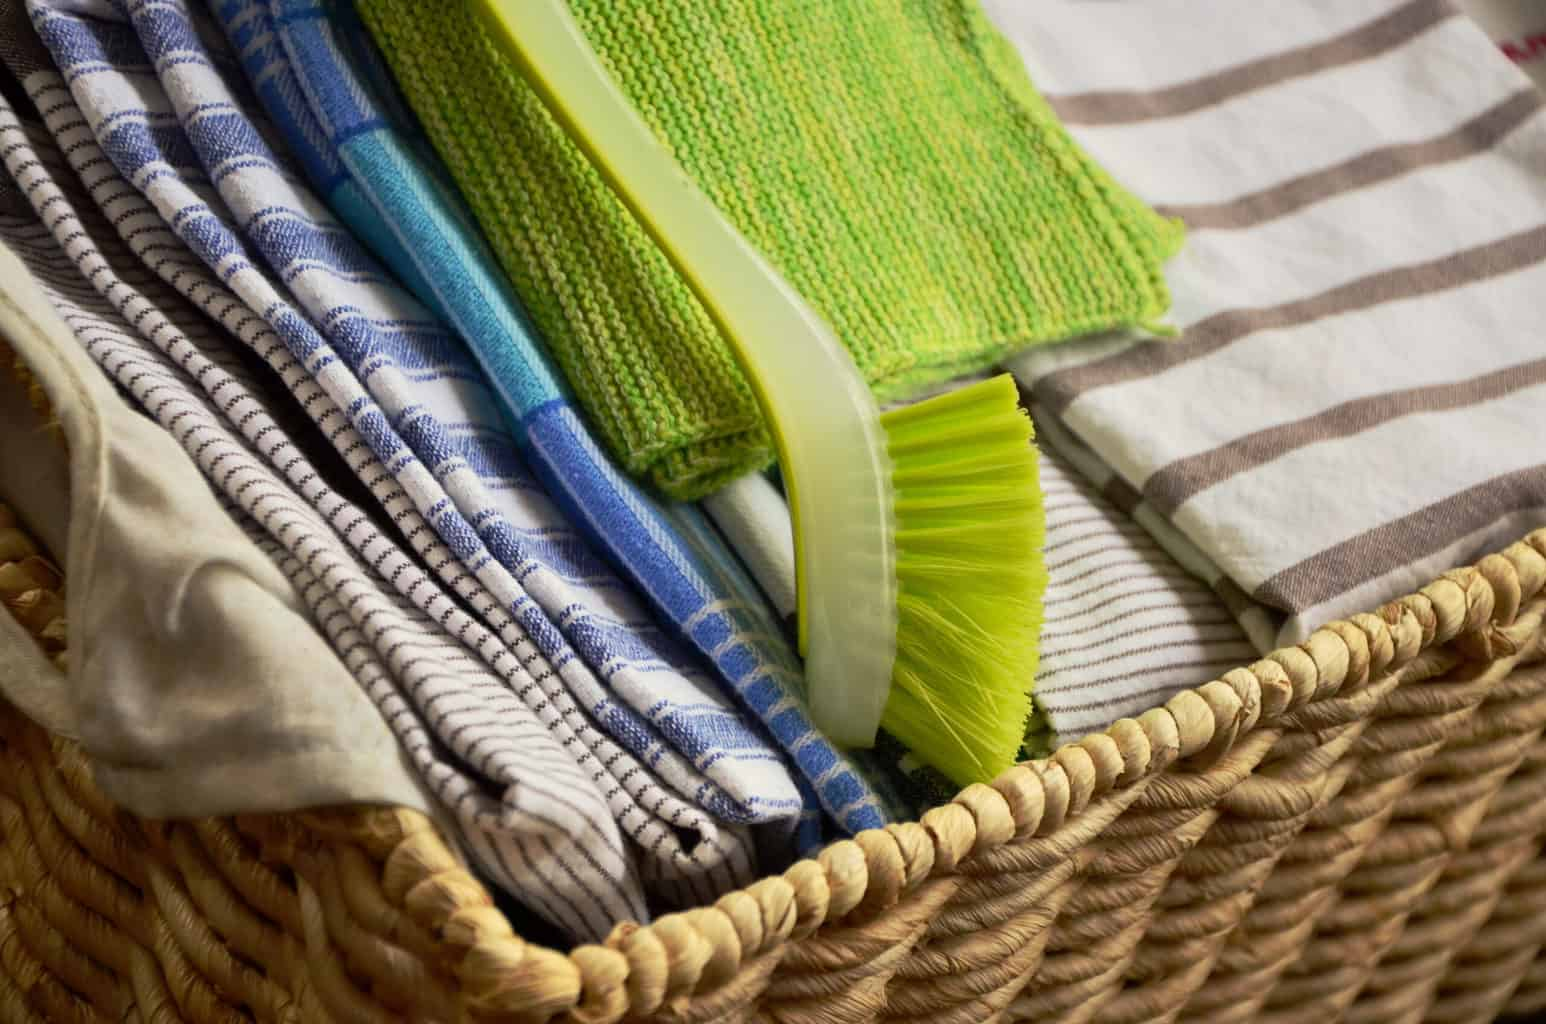 a basket of dishcloths. Follow these tips for saving money from a homesteader and get back to the basics when it comes to saving money.